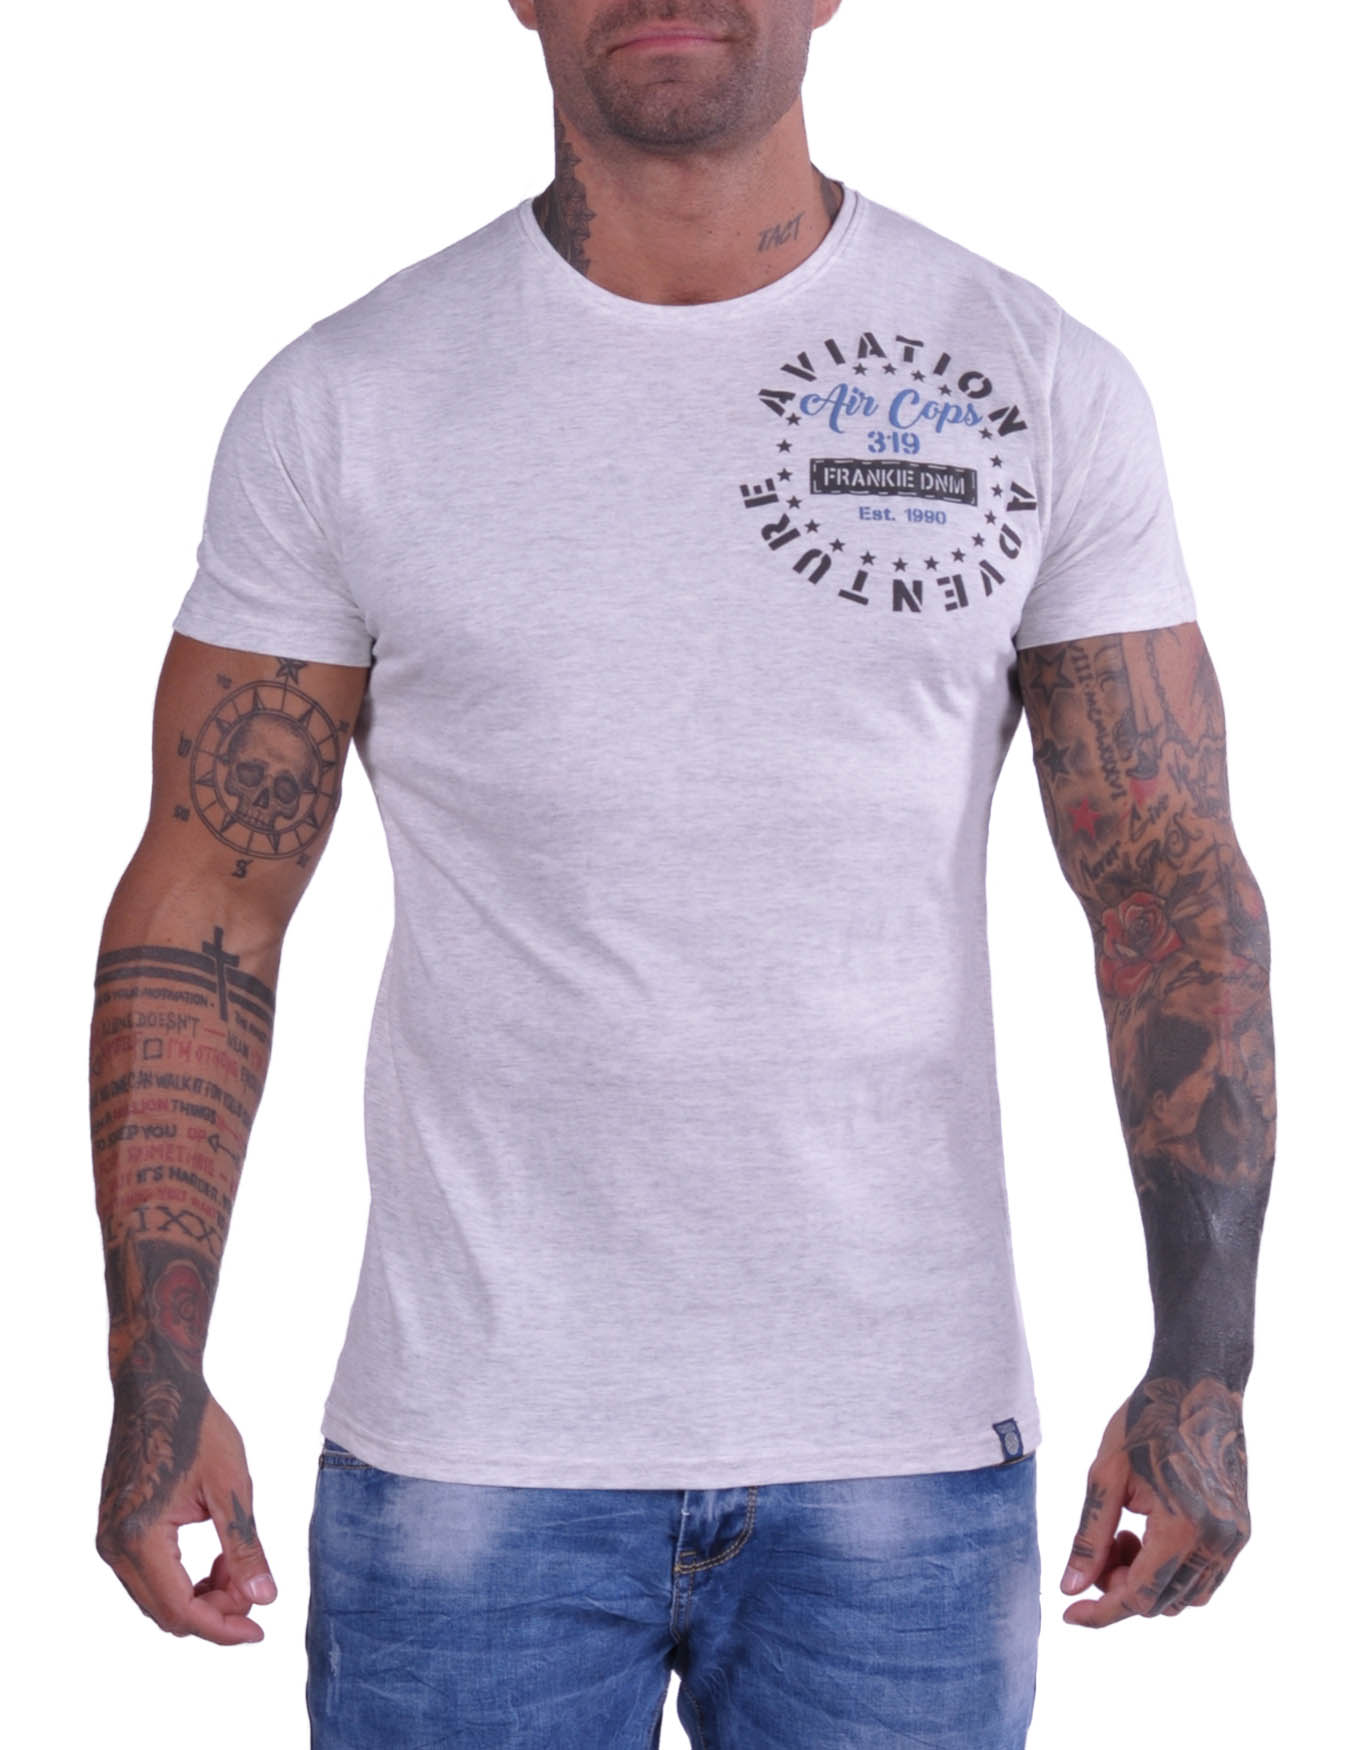 Ανδρικό T-Shirt Aviation adventure (ΚΩΔ 20190004) - FRANKIE DENIM - 20190004